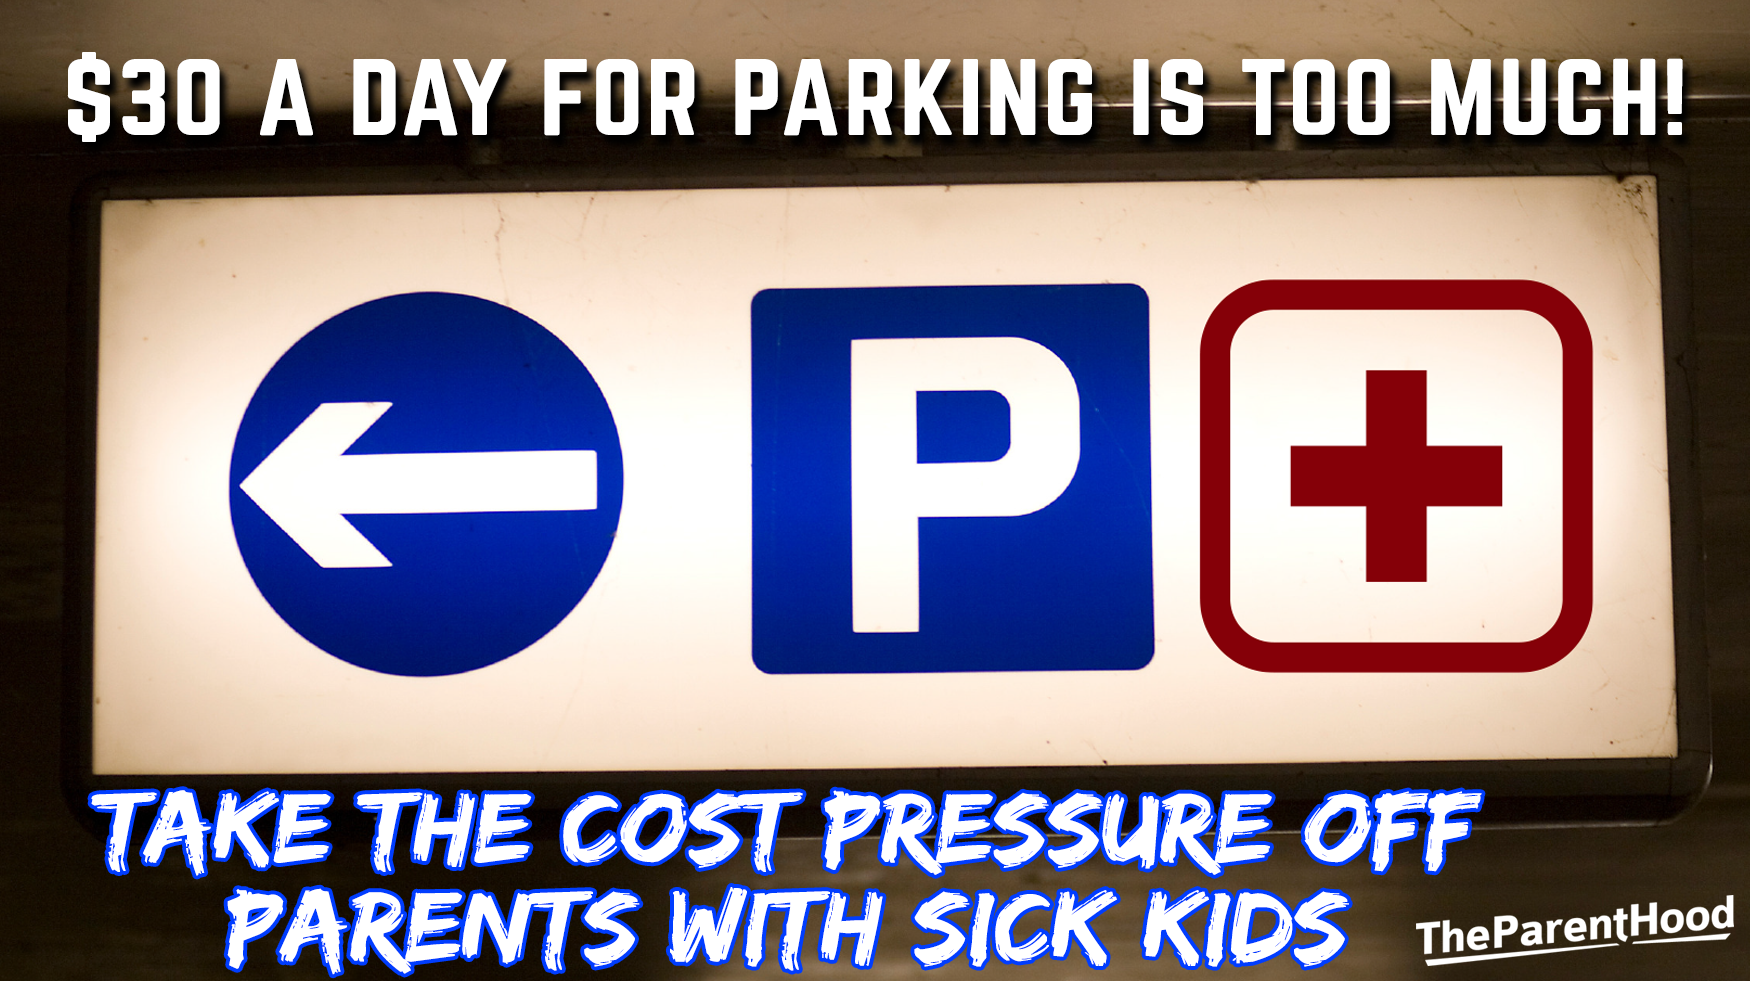 $30 a day for parking is too much!  Take the cost pressure off parents with sick kids.